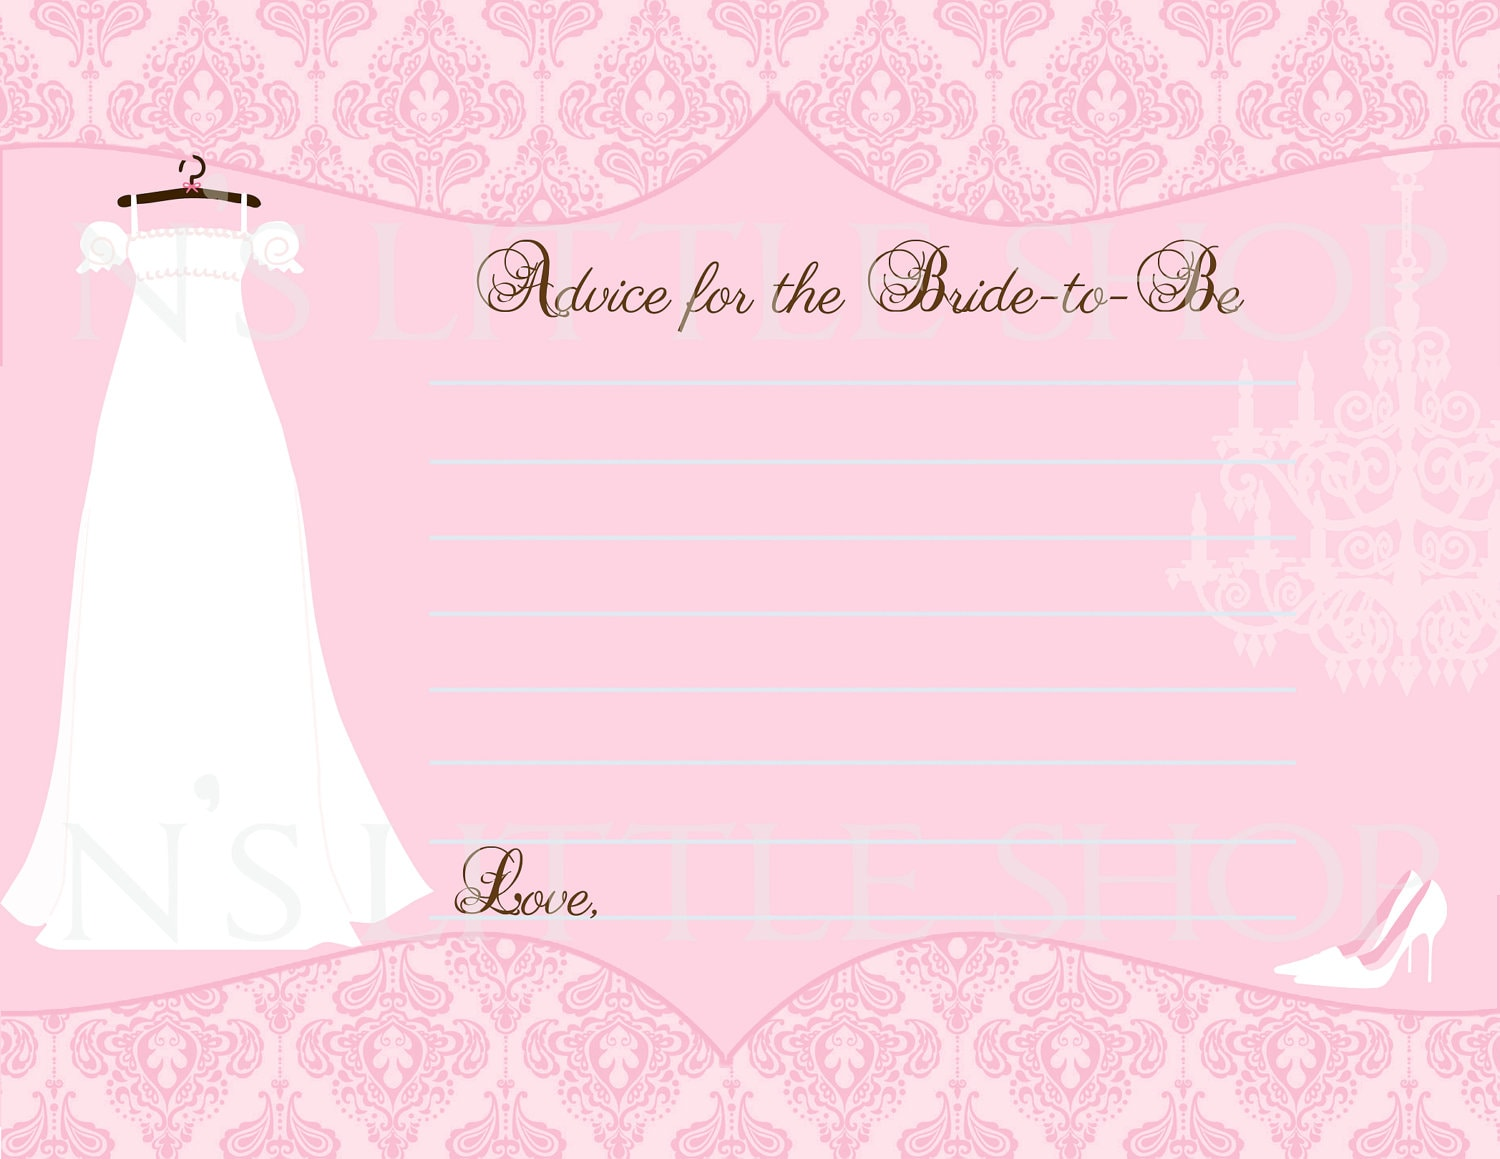 Bridal Shower Advice Card For The Bride To Be By Nslittleshop